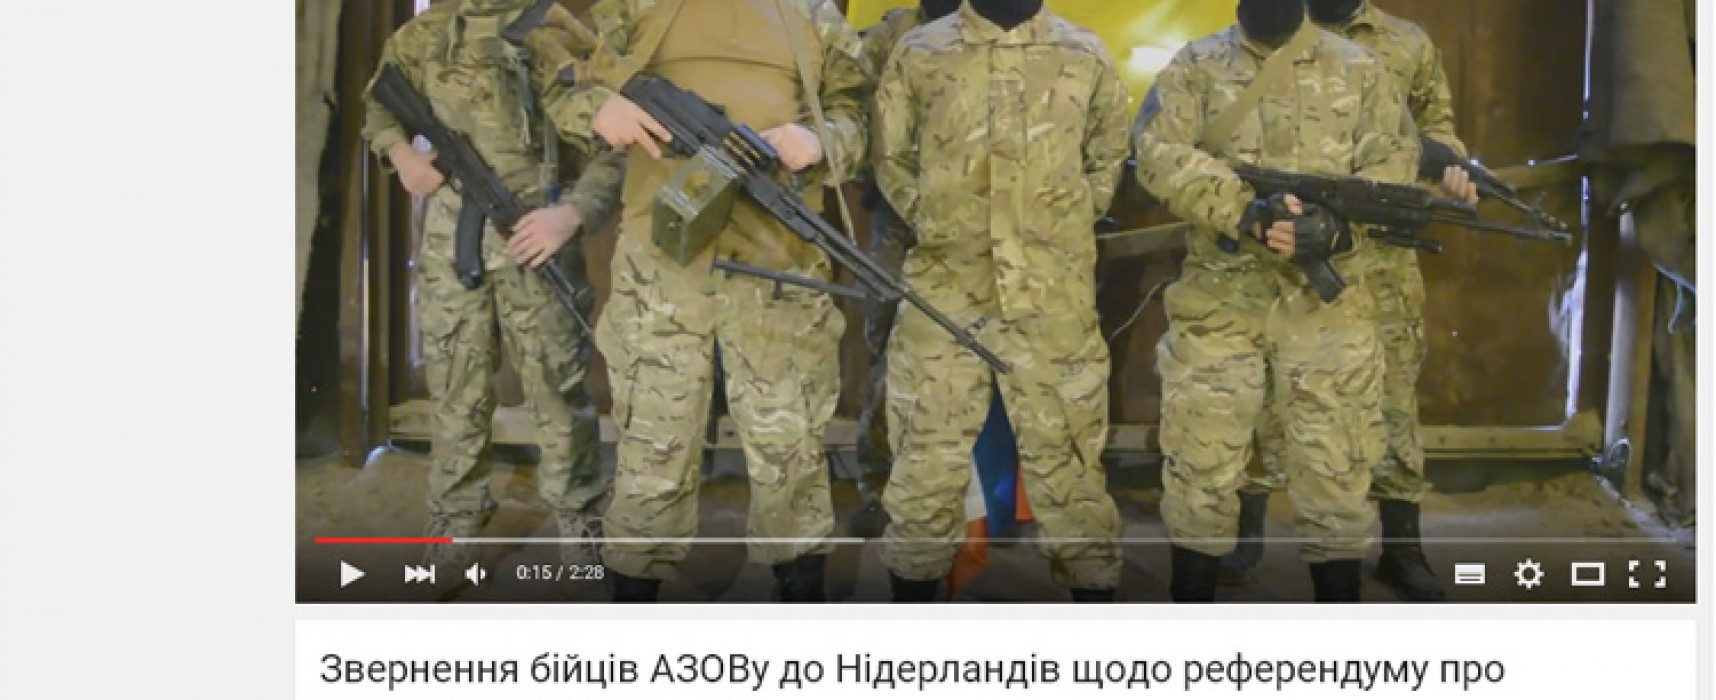 """Fake: Azov threatens to """"destroy Dutch citizens"""" if they reject association deal with Ukraine"""